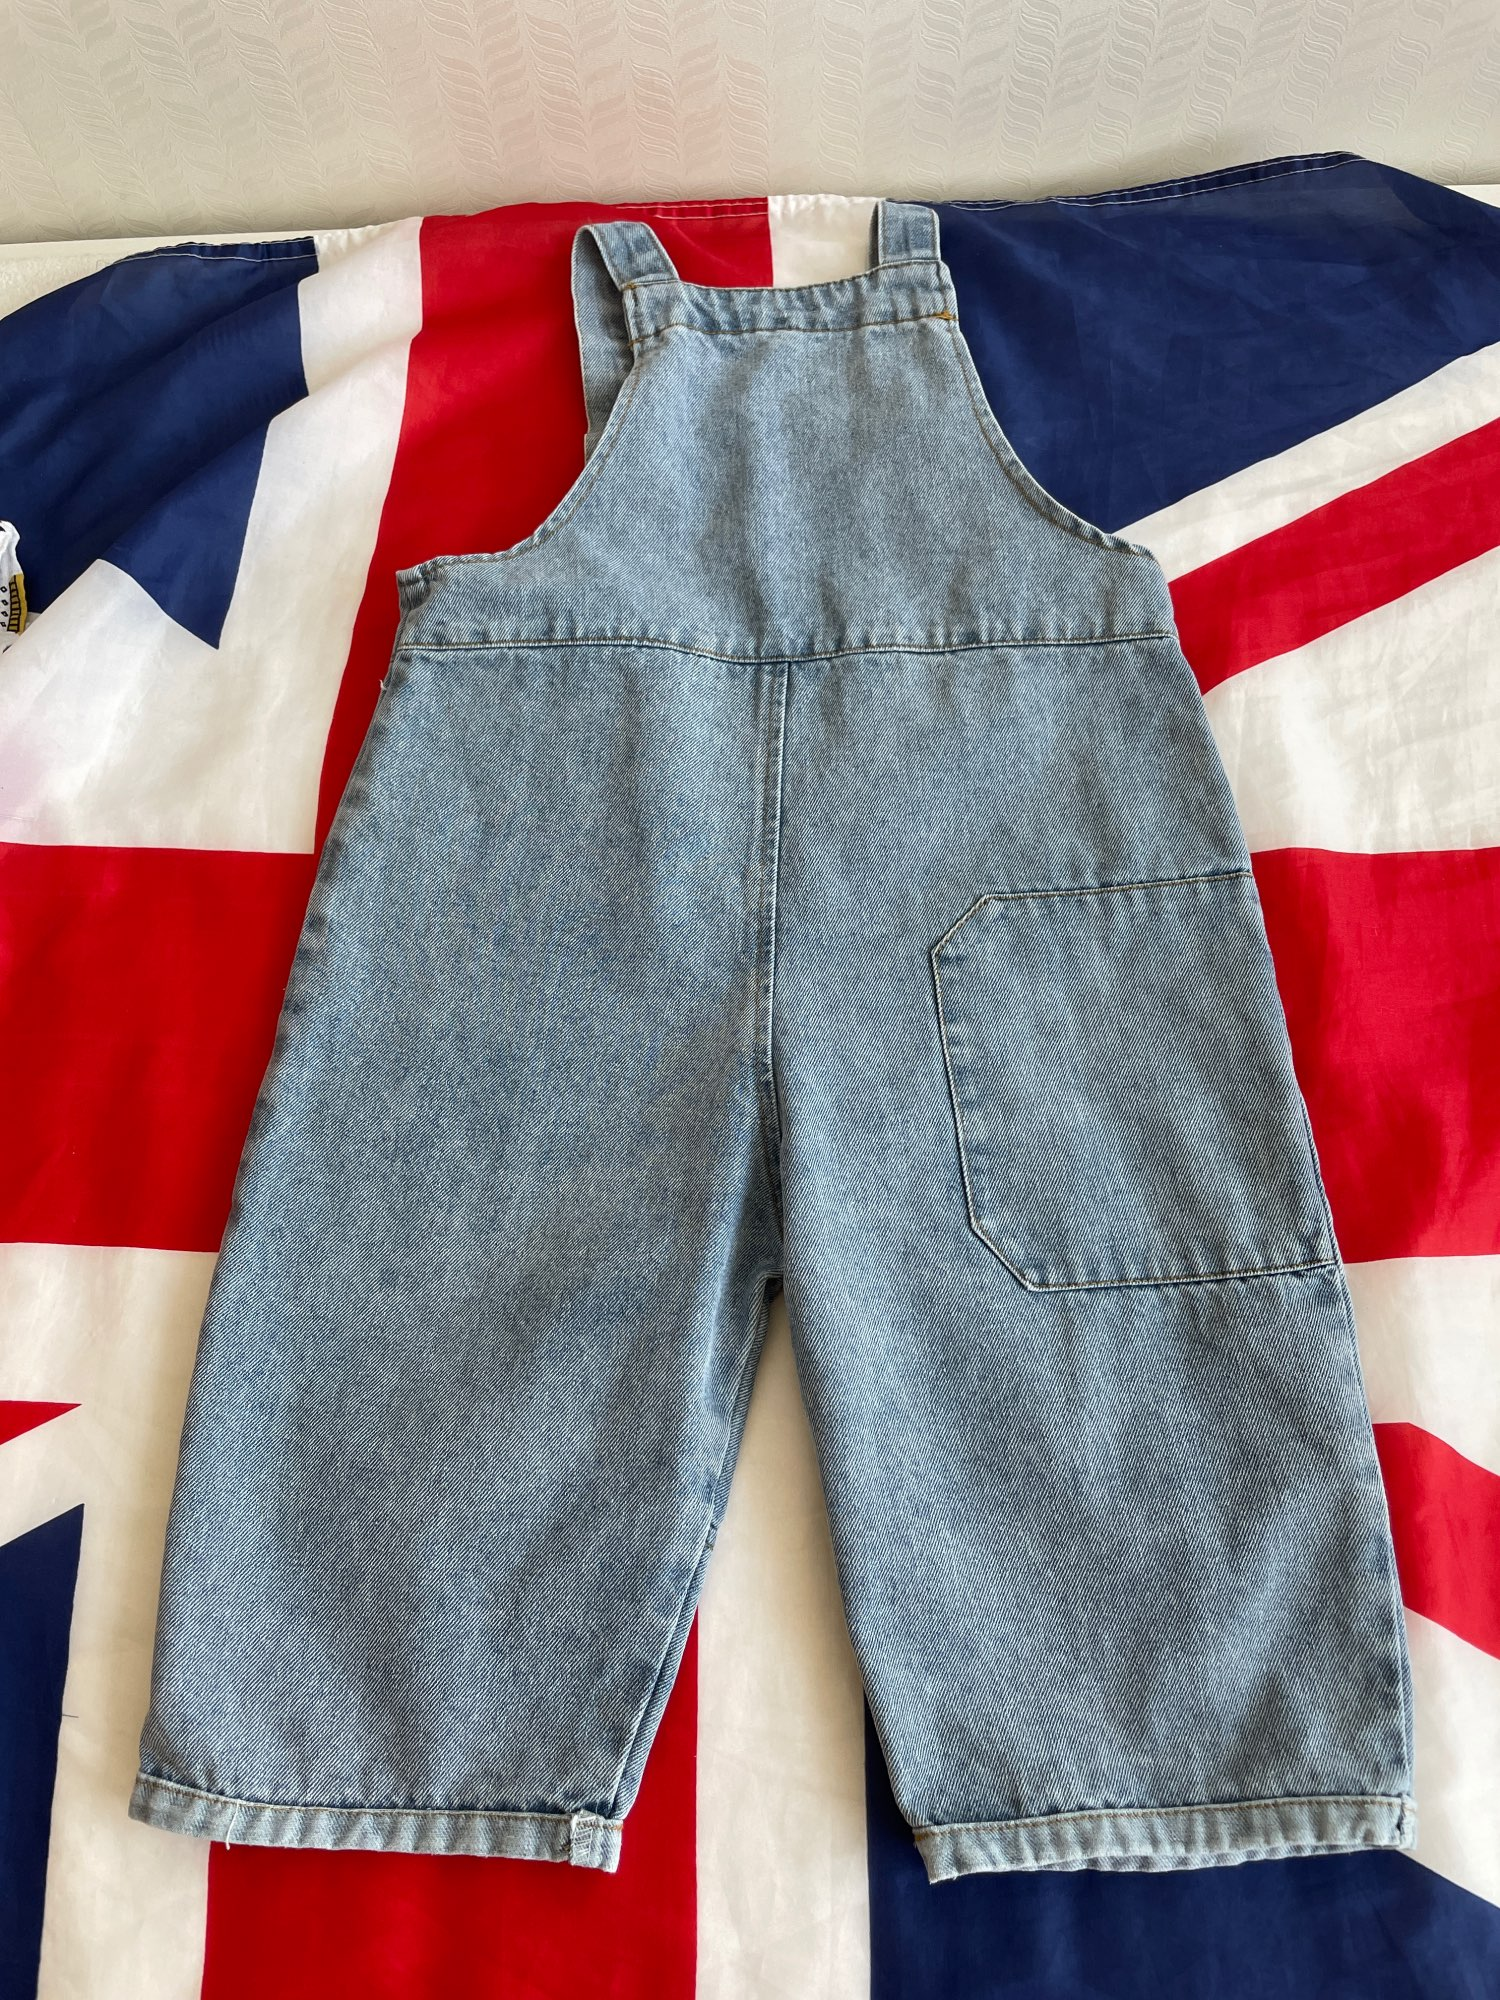 2021 New Children Loose Overalls boys girls casual all-match denim Trousers Spring Solid Outwear 1-7Y Kids fashion bib pants photo review